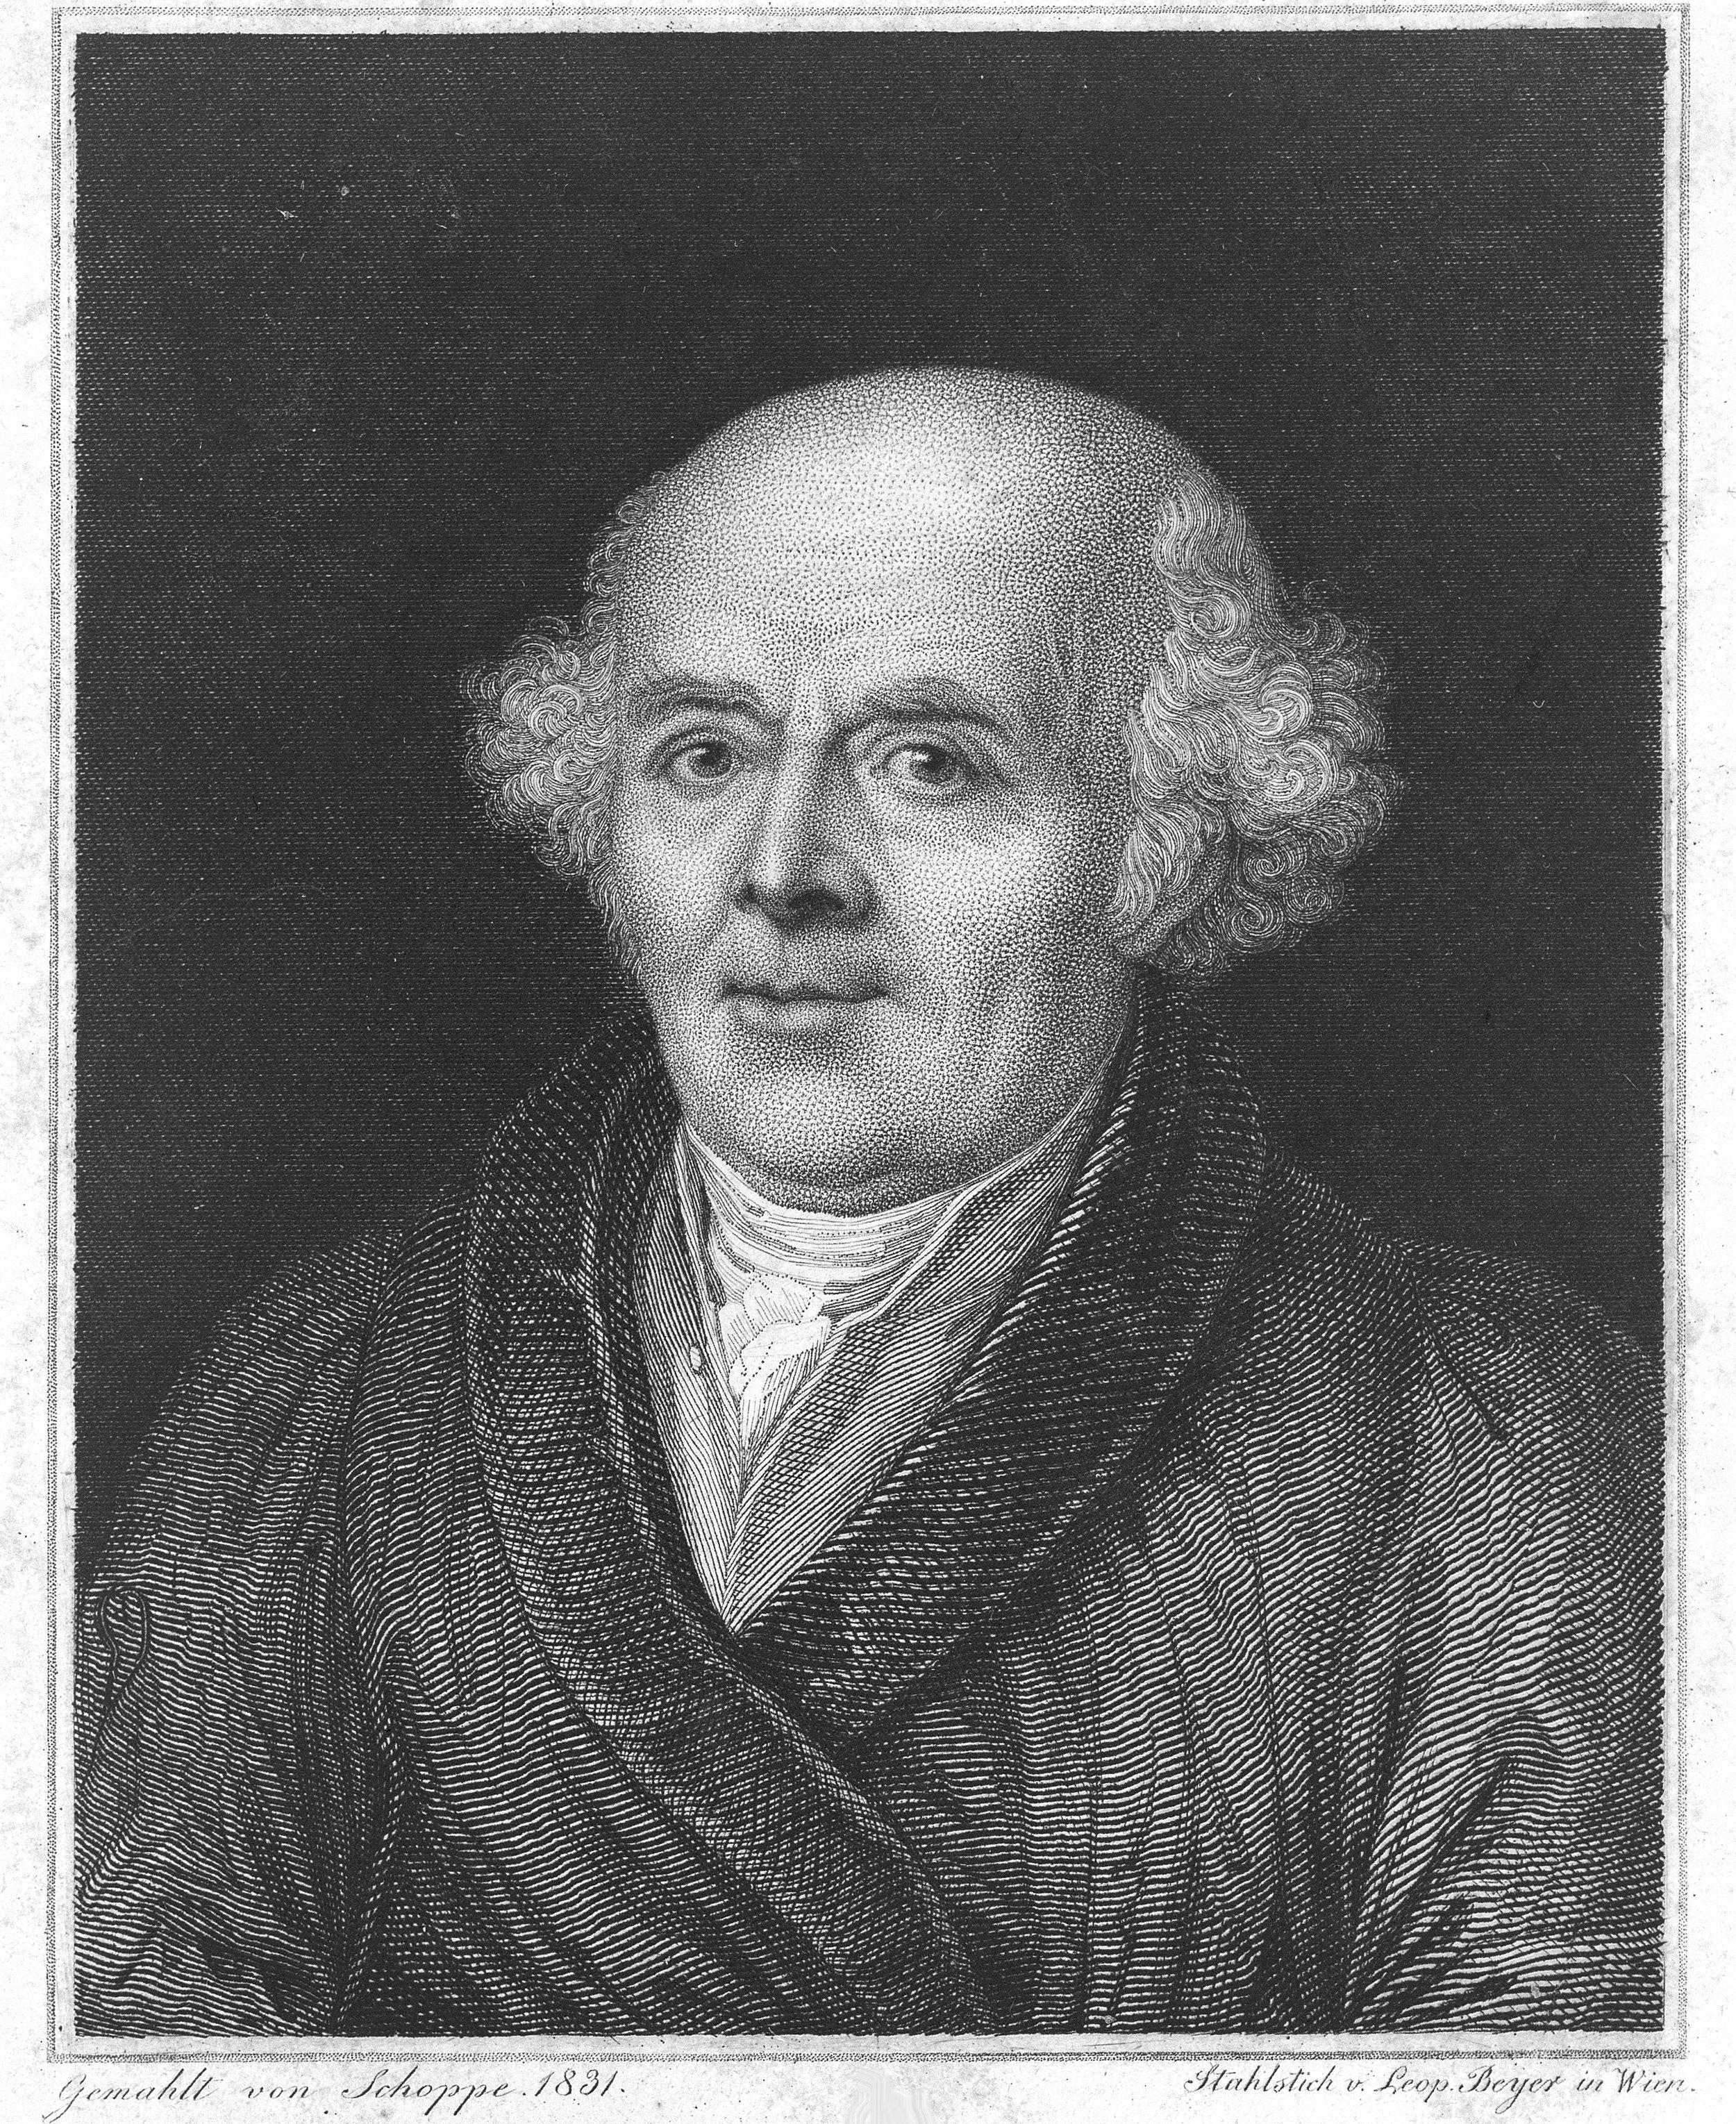 L0016250 Samuel Christian Friedrich Hahnemann. Line engraving by L. BCredit: Wellcome Library, London. Wellcome Imagesimages@wellcome.ac.ukhttp://wellcomeimages.orgSamuel Christian Friedrich Hahnemann. Line engraving by L. Beyer after J. Schoppe, senior, 1831.By: J. Schoppeafter: L. BeyerPublished: -Copyrighted work available under Creative Commons Attribution only licence CC BY 4.0 http://creativecommons.org/licenses/by/4.0/